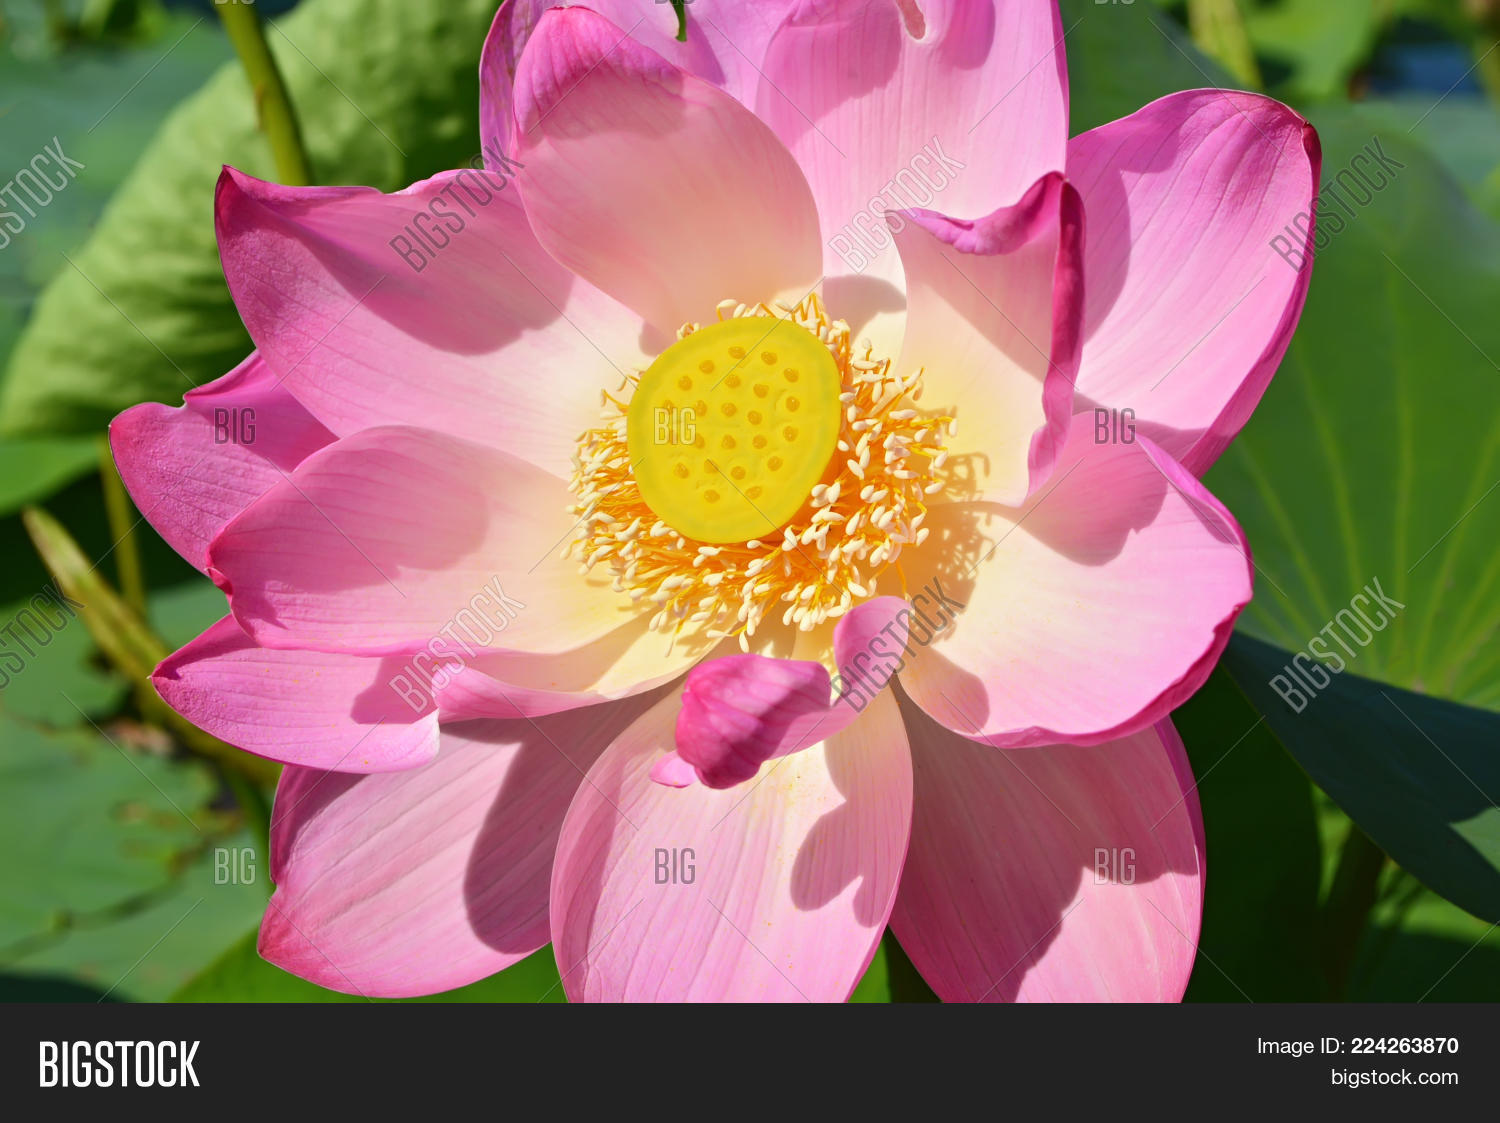 This Flower Admire Image Photo Free Trial Bigstock